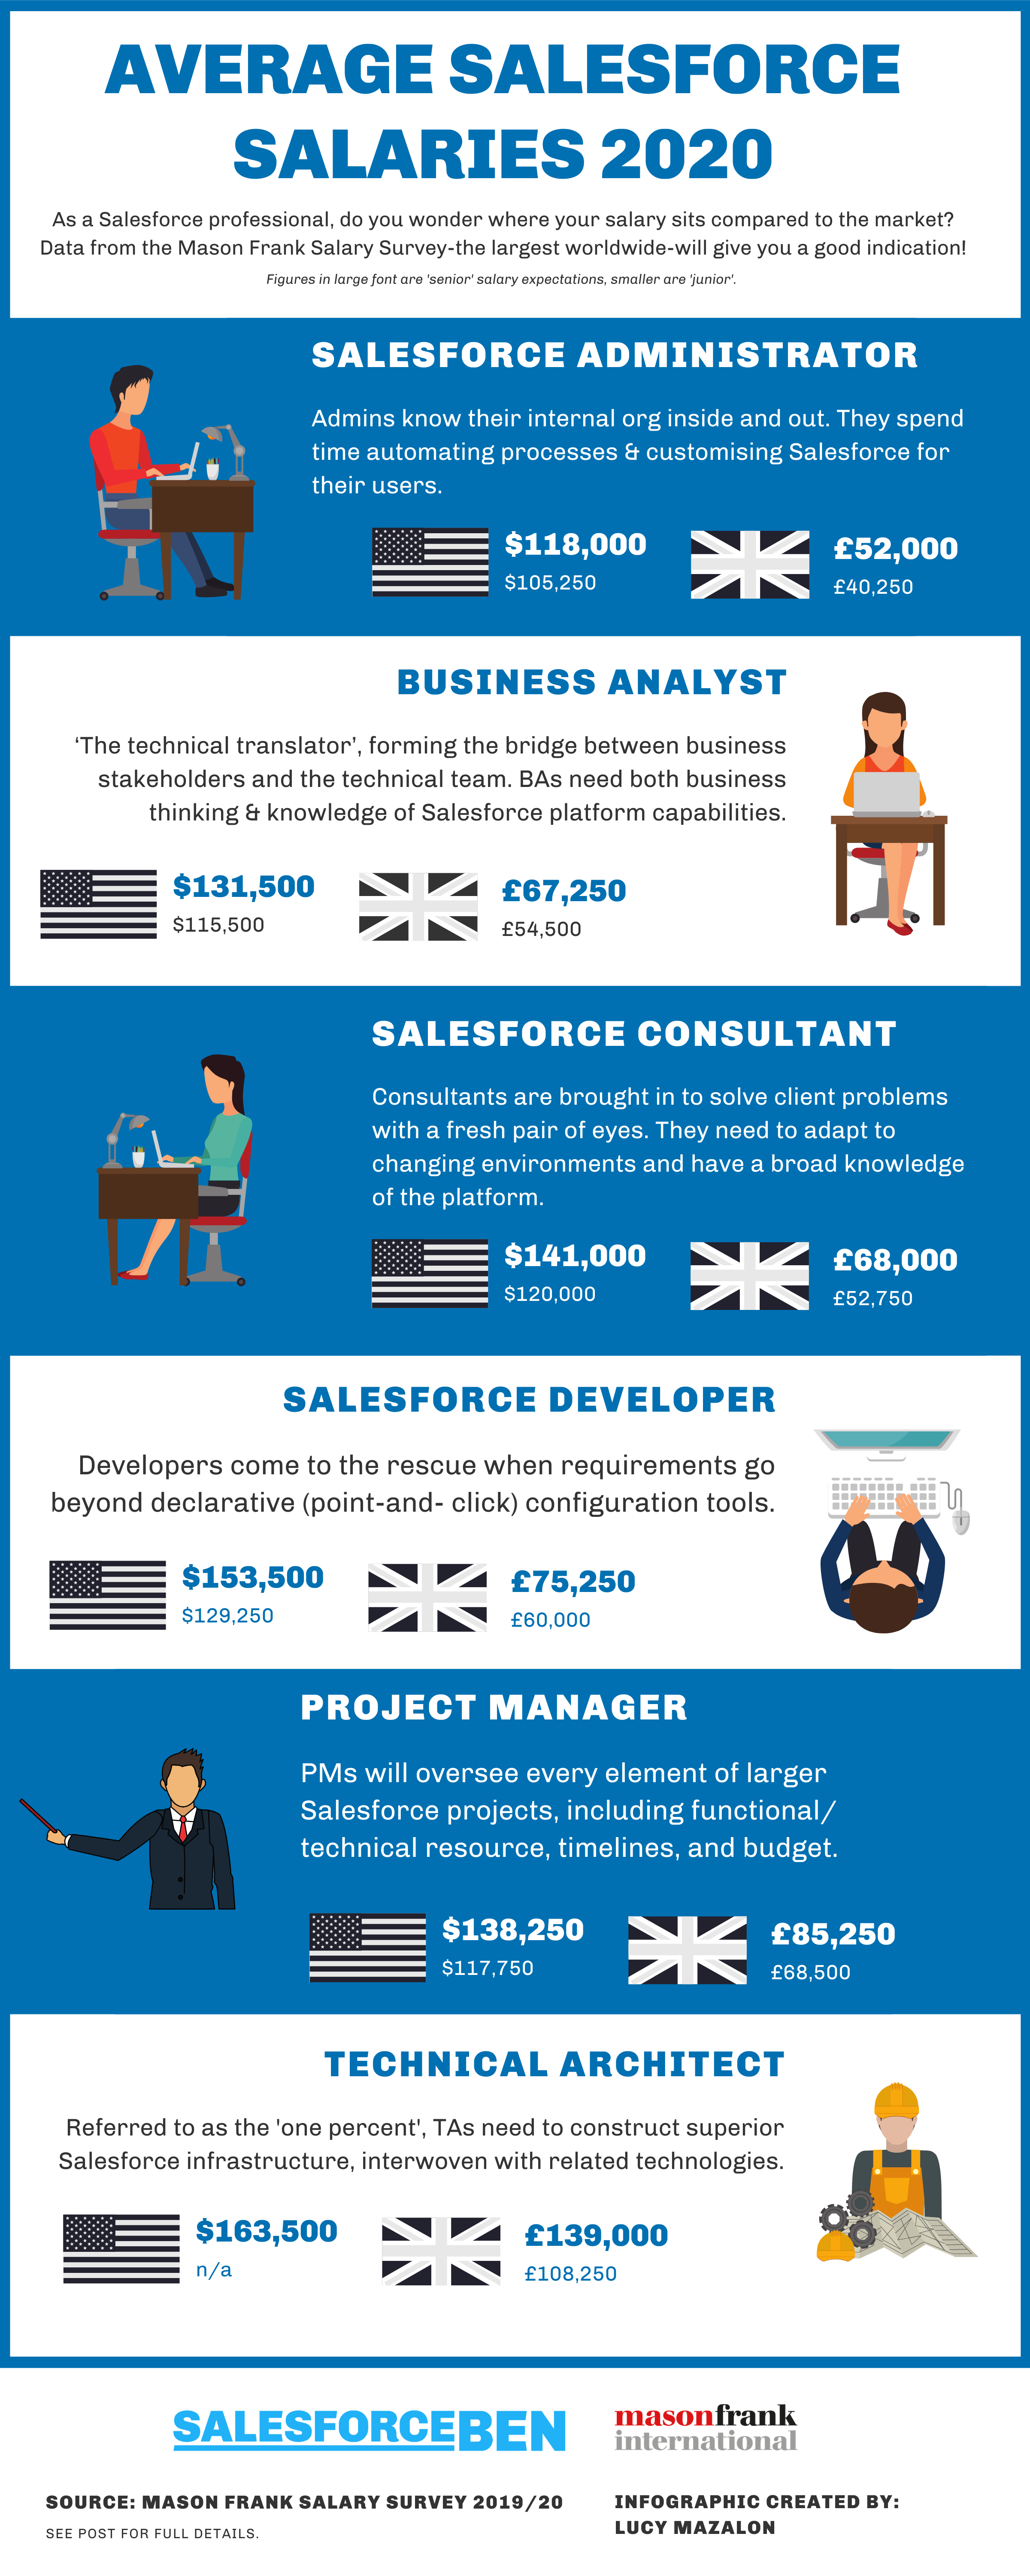 Average Salesforce Salaries 2020 infographic, for admins, analysts, developers, consultants and project managers